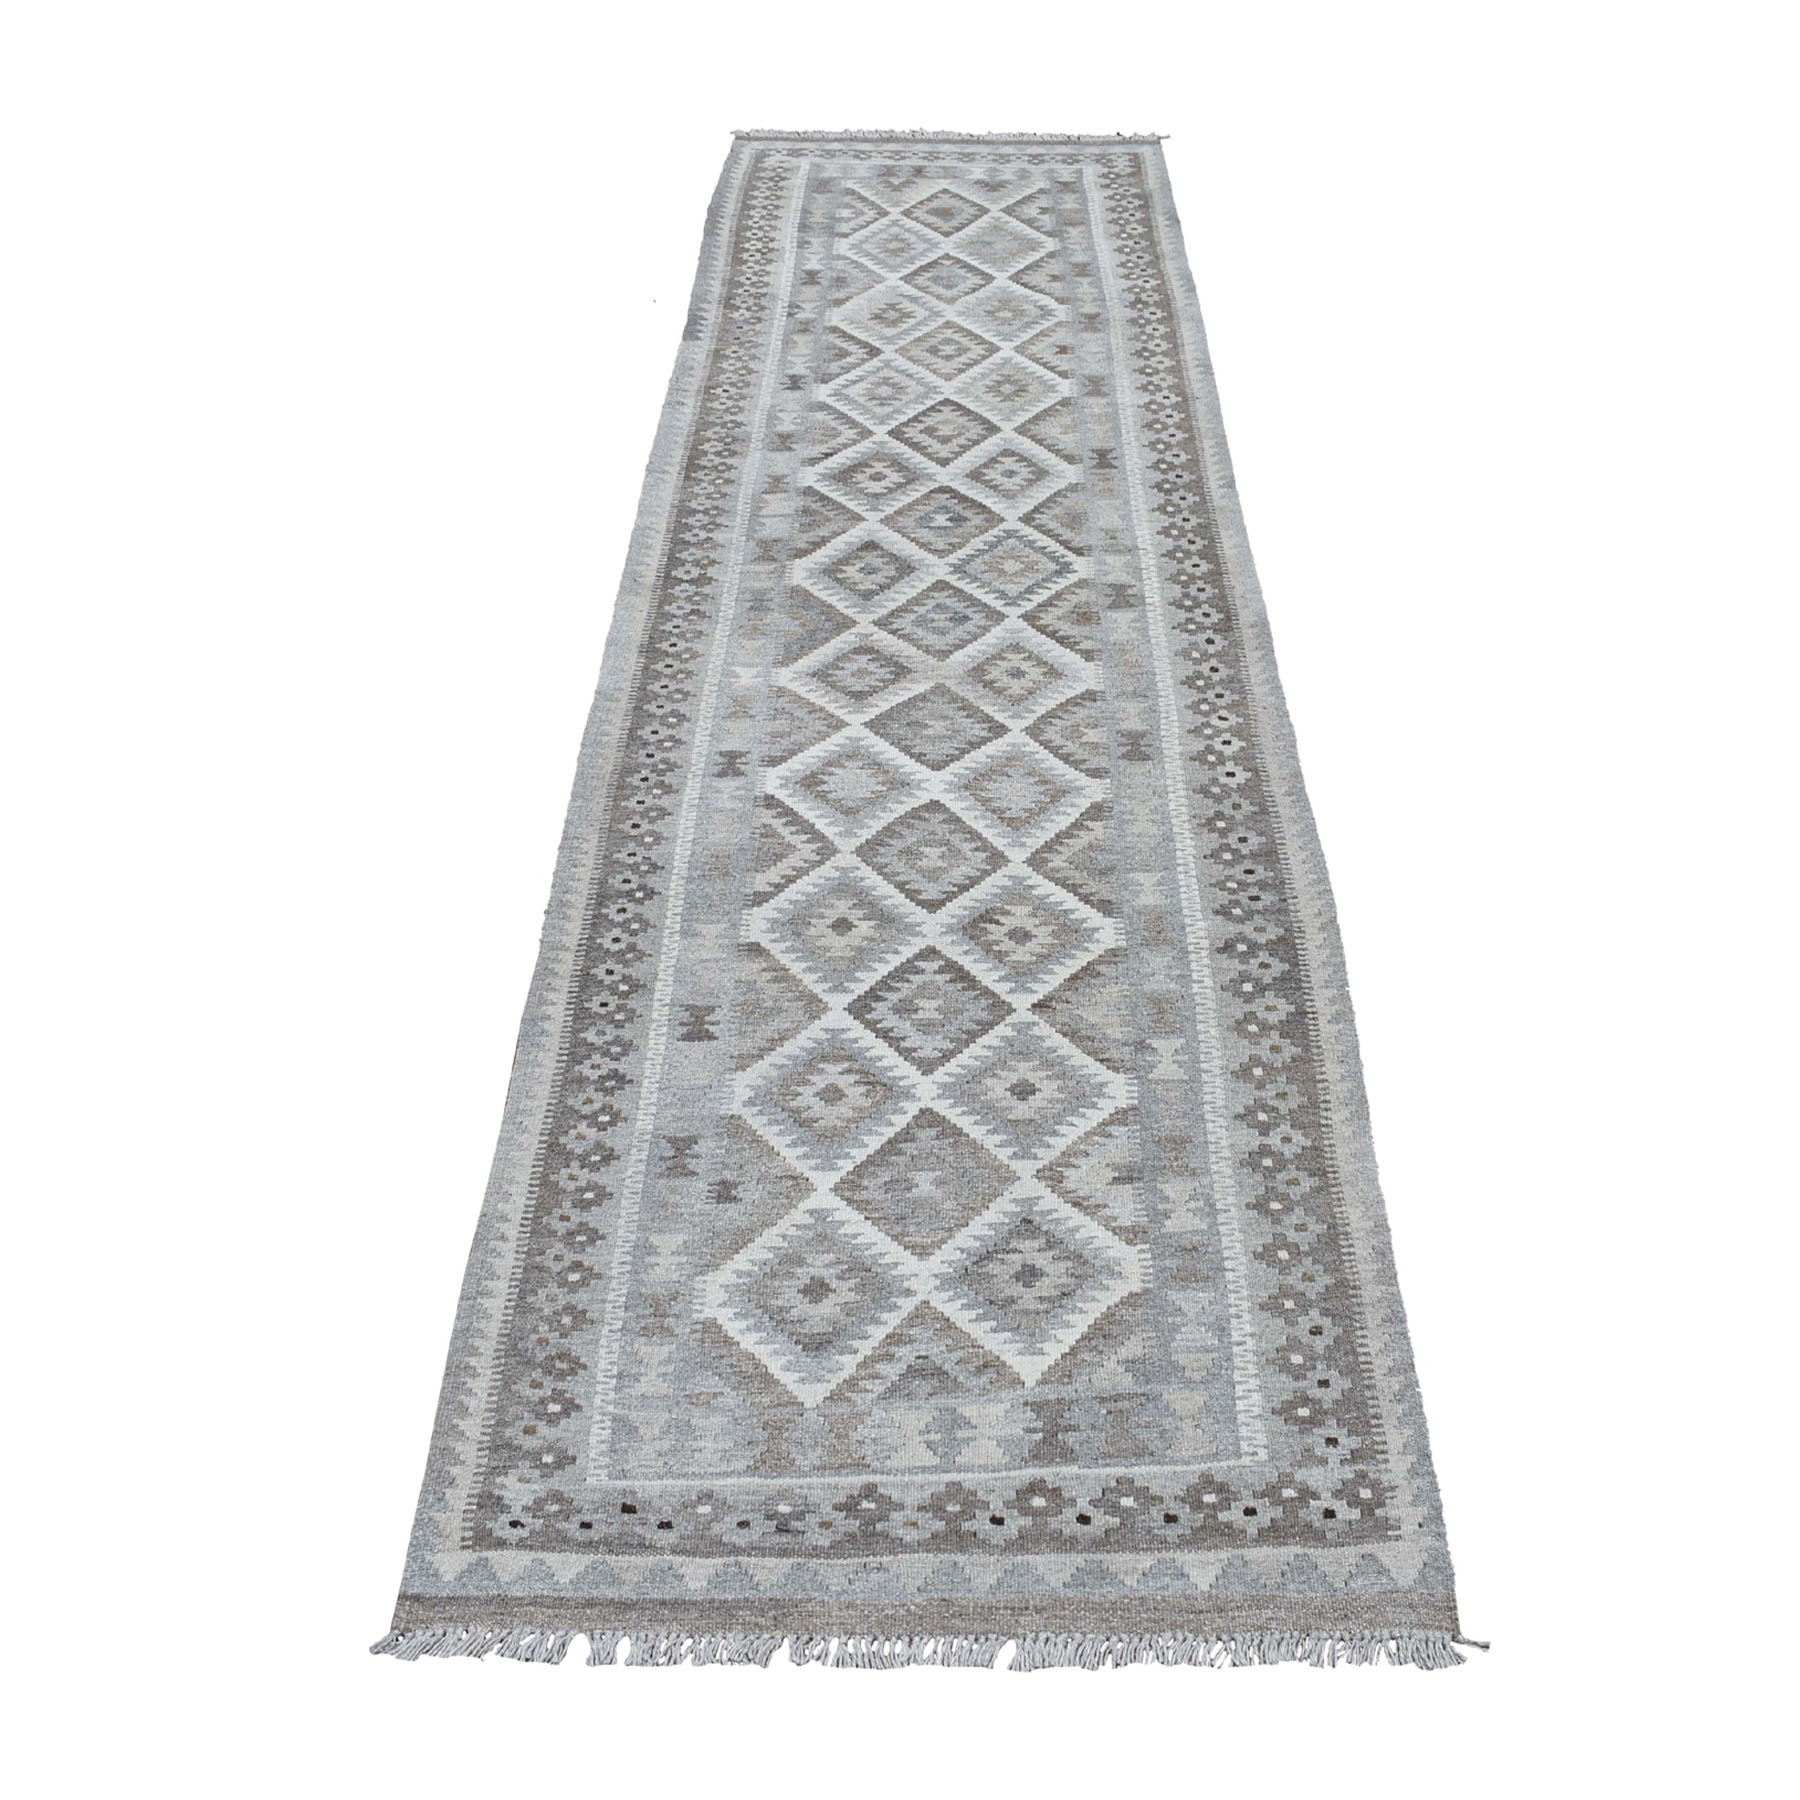 """2'10""""X9'7"""" Undyed Natural Wool Afghan Kilim Reversible Hand Woven Runner Oriental Rug moaec08c"""